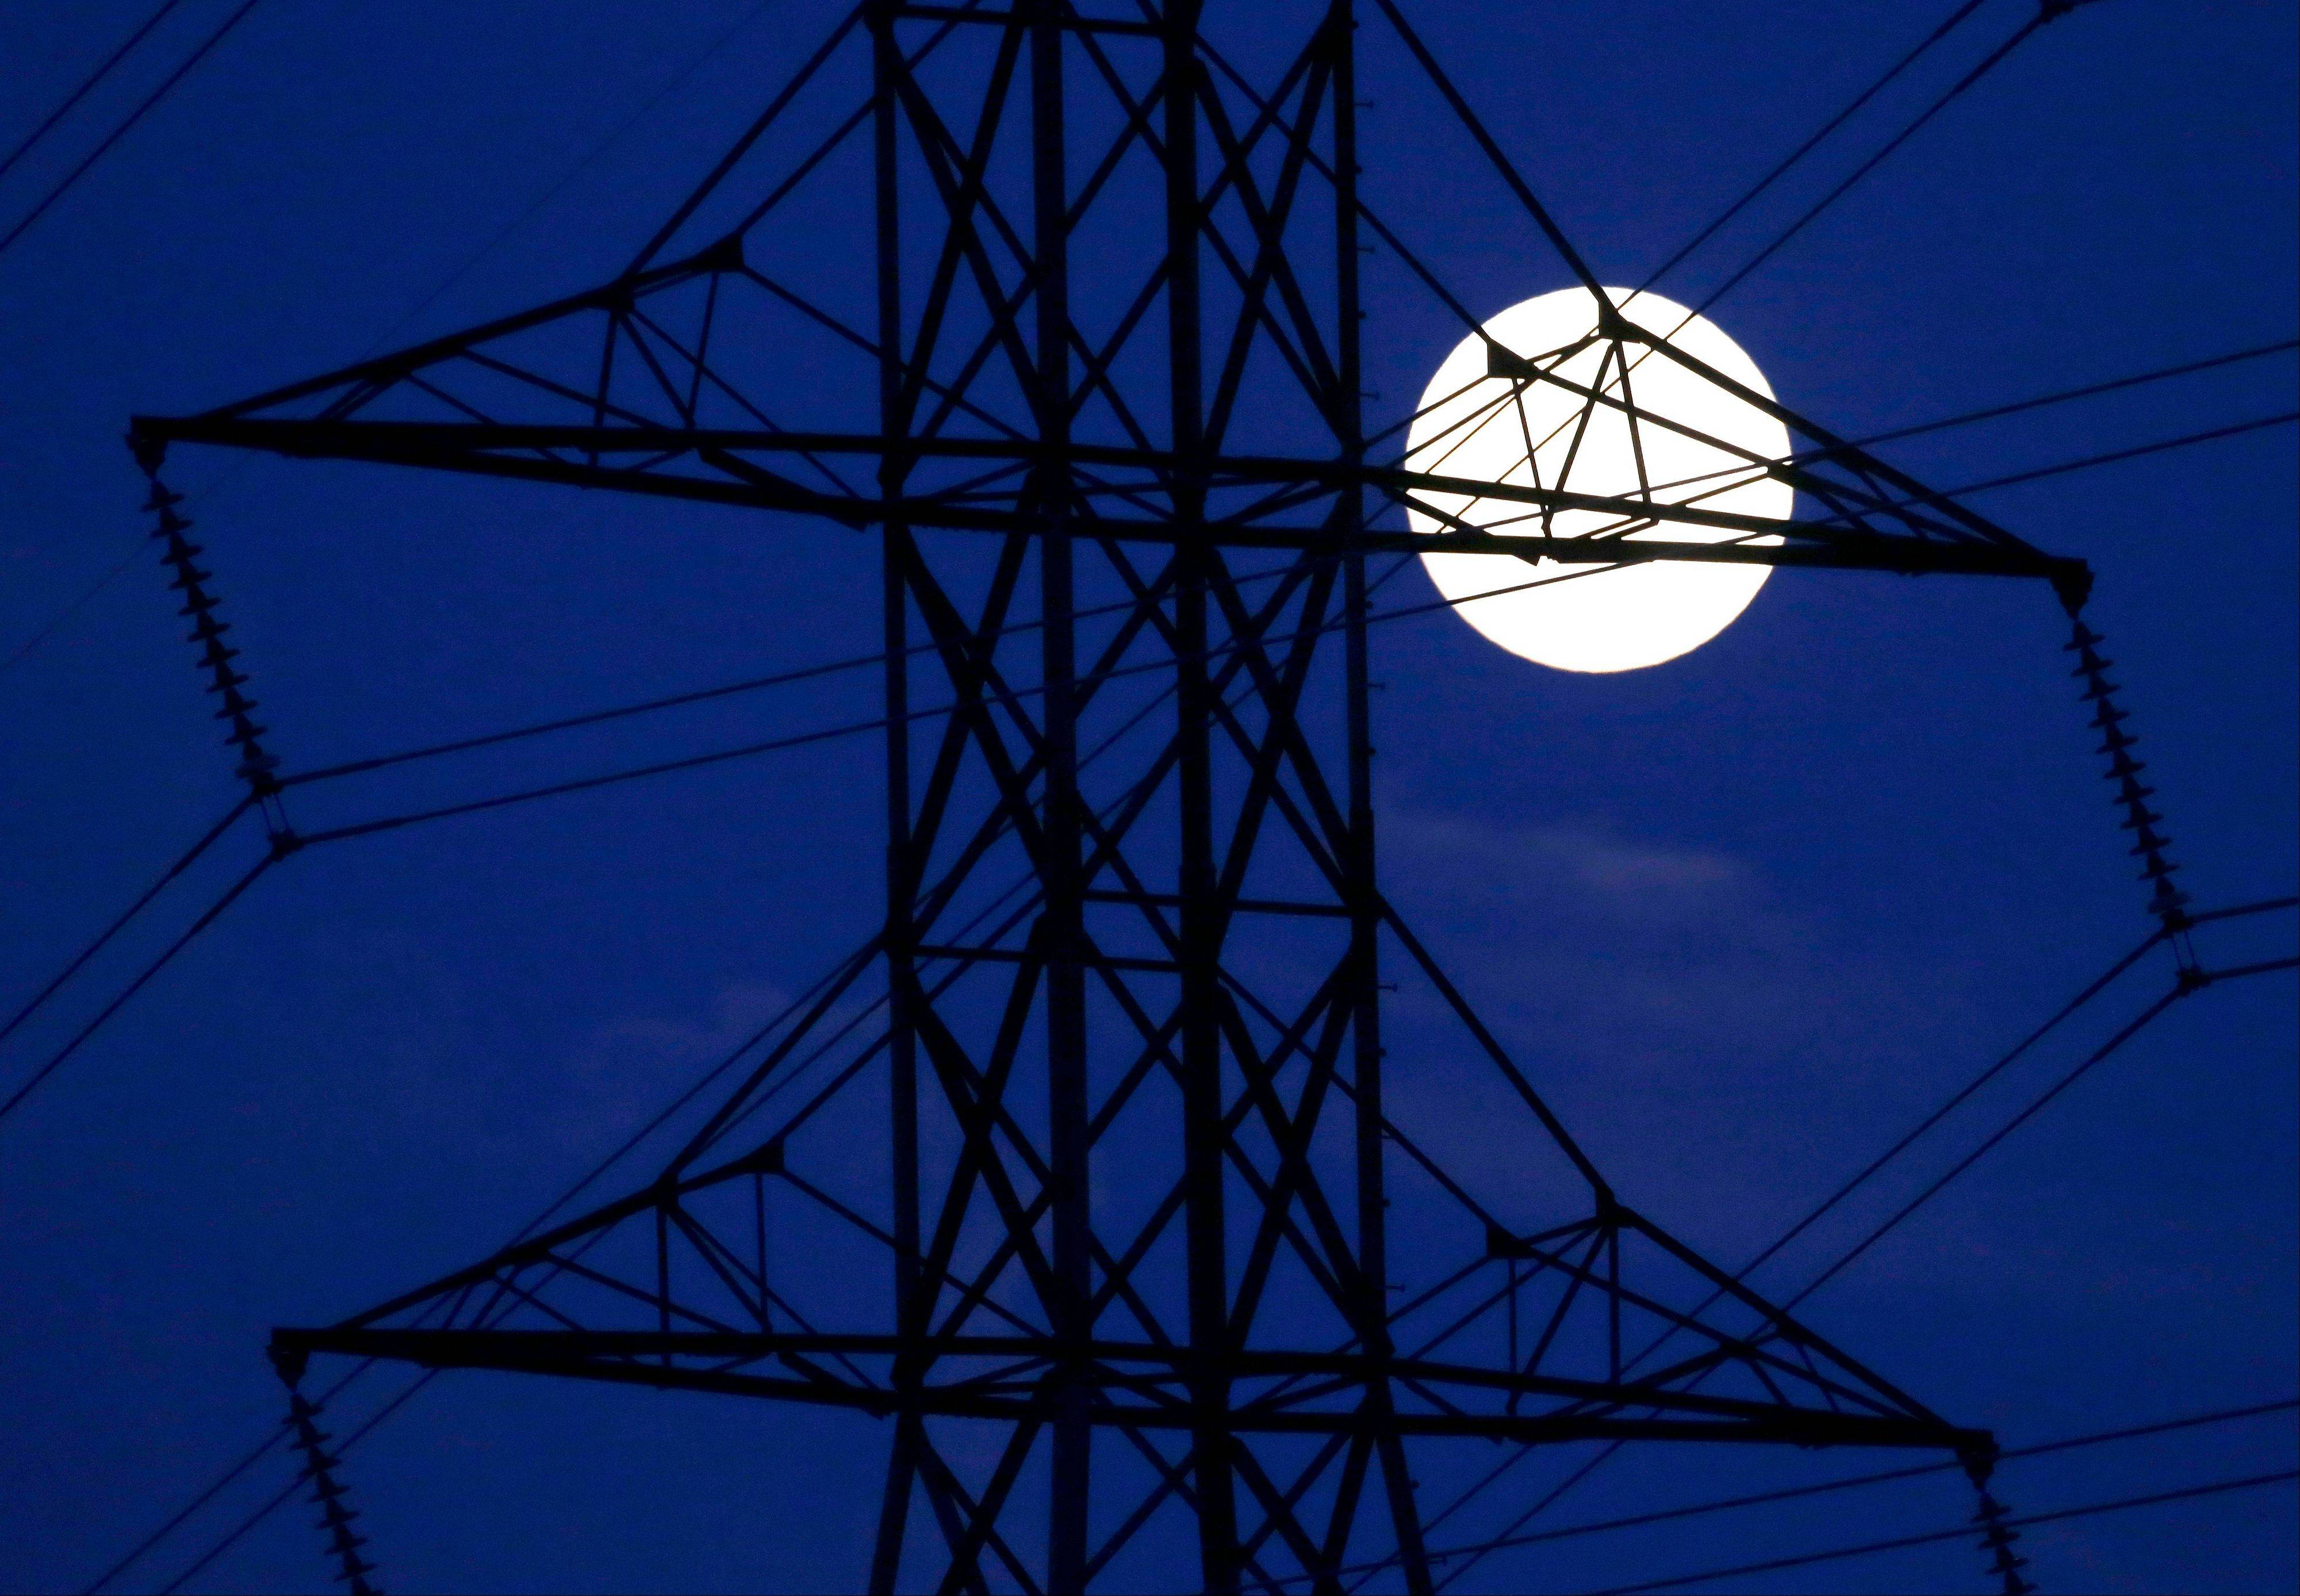 The moon rises behind power lines on Saturday, June 22, 2013, in Nashville, Tenn. The biggest and brightest full moon of the year, called a supermoon, happens as the moon passes closer to earth than usual. Associated Press